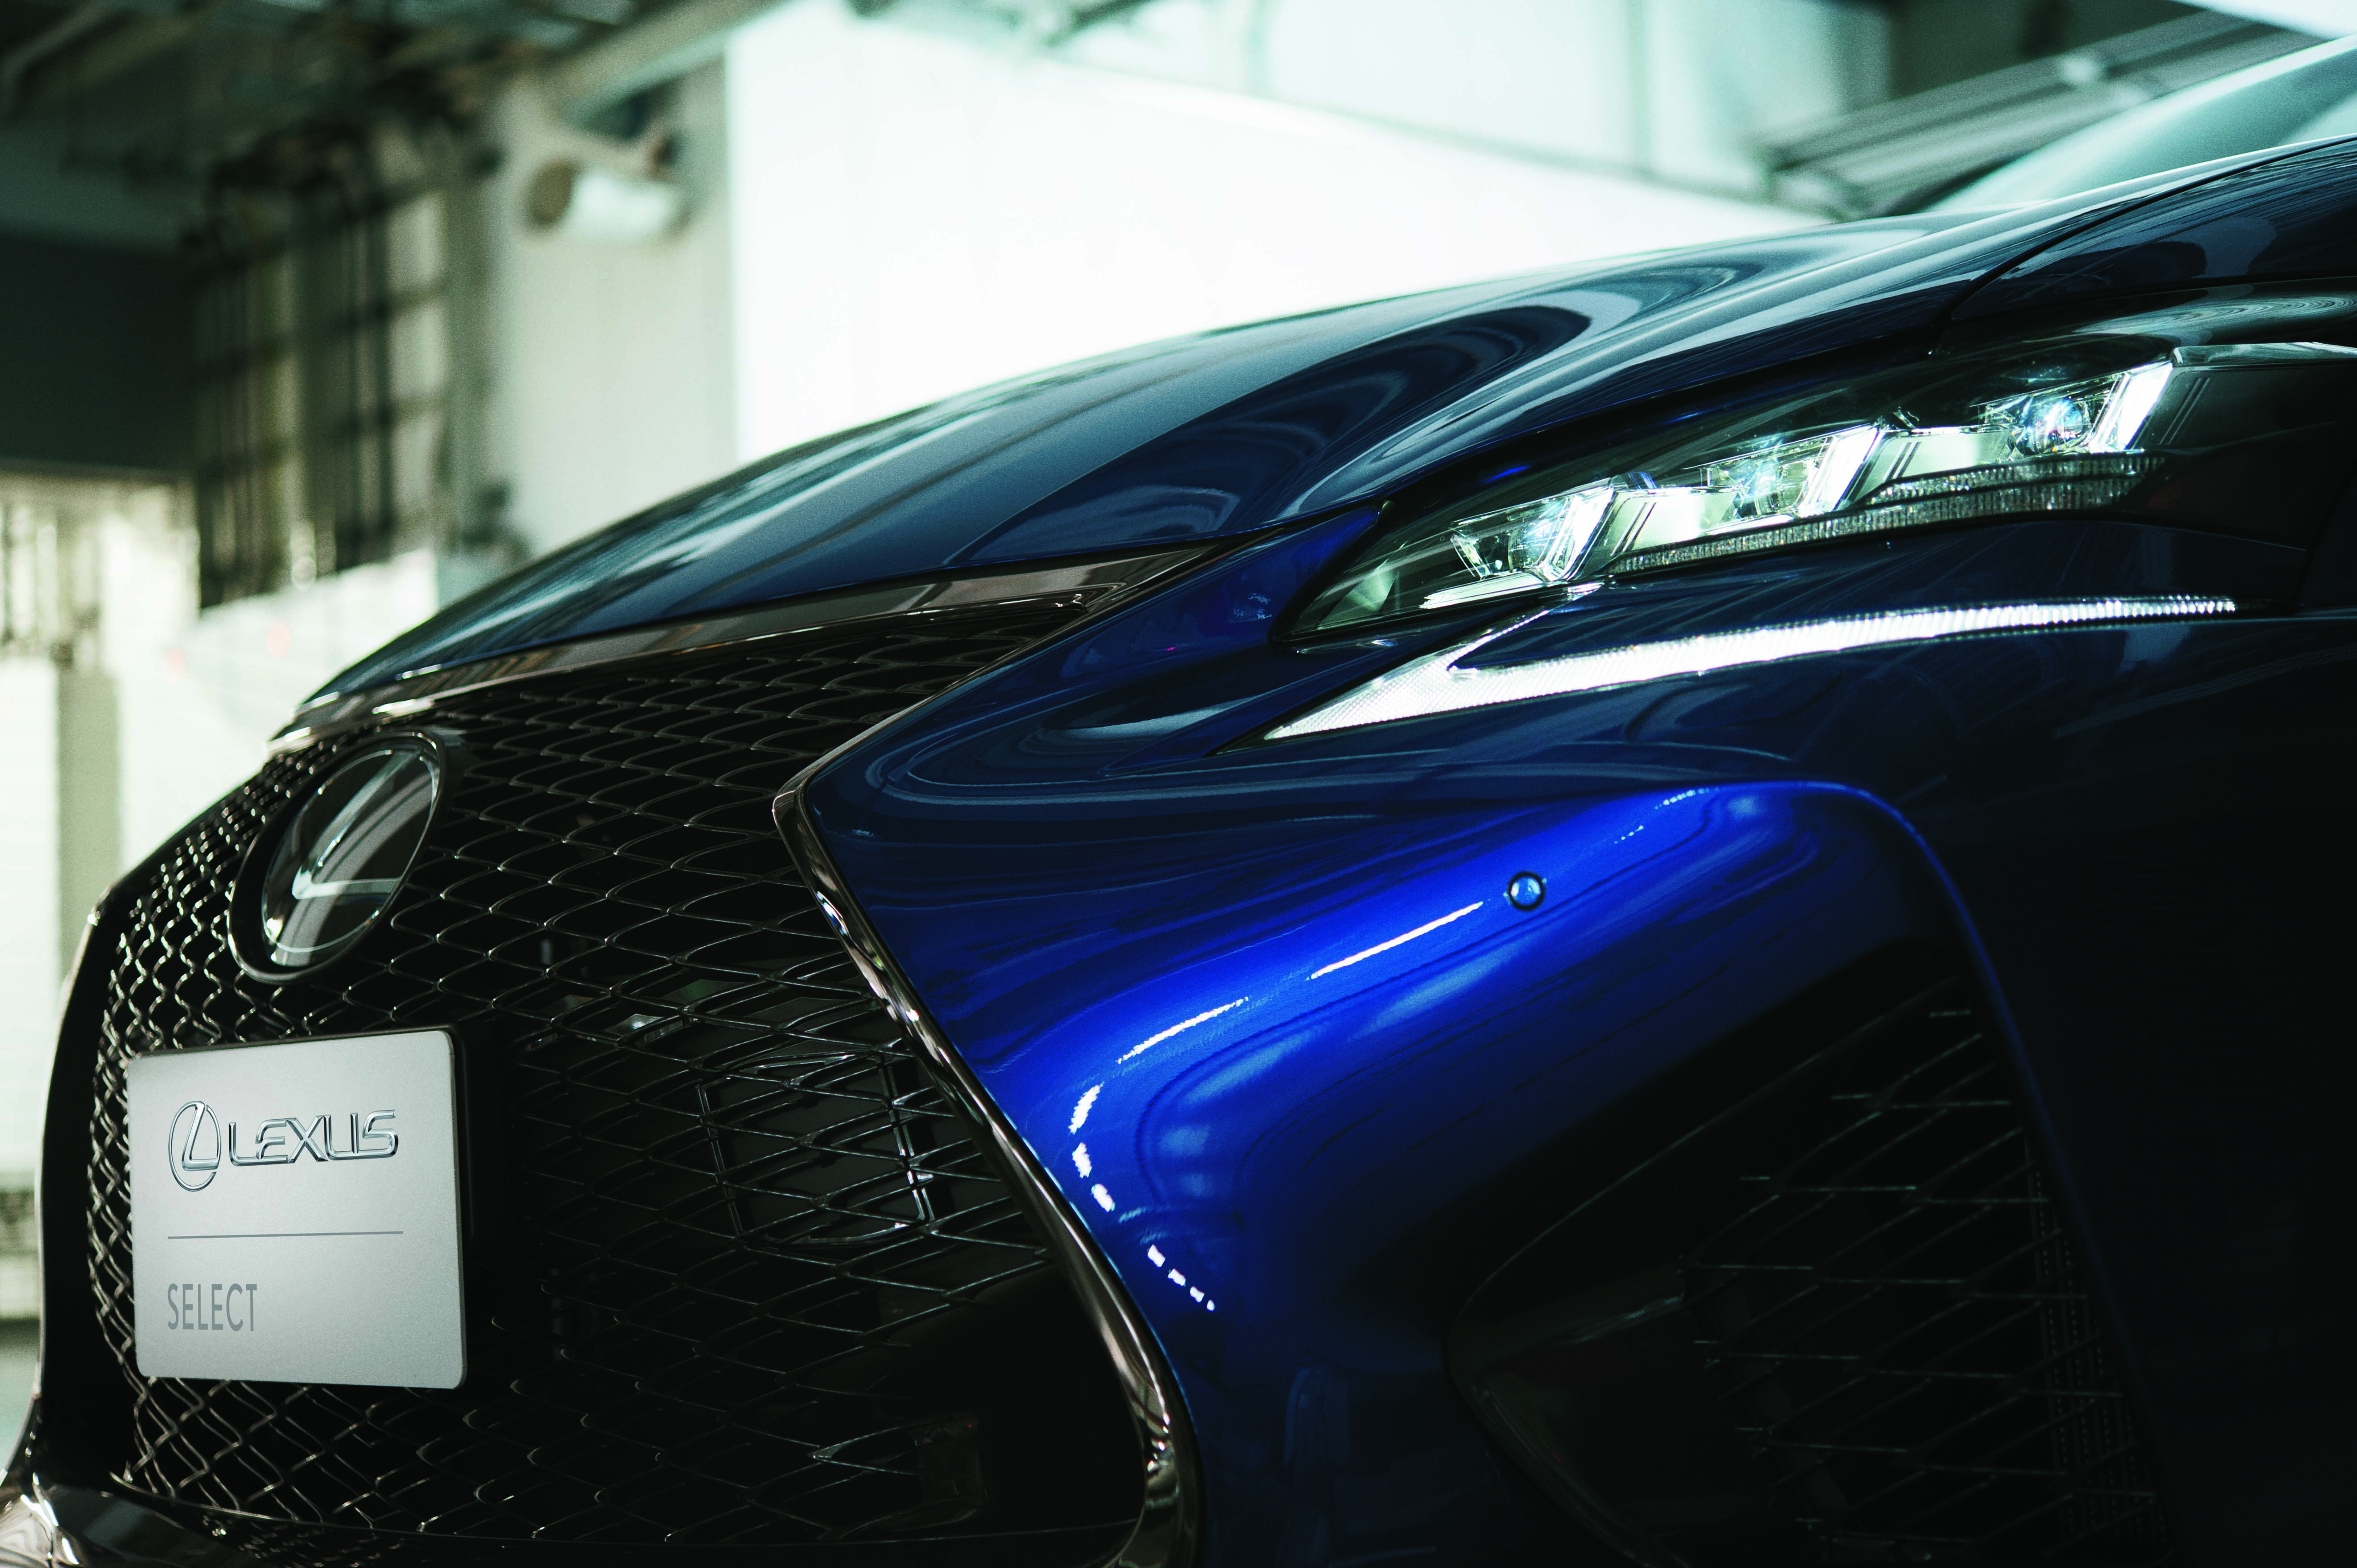 Parallax Image 2 Used Cars Lexus Select